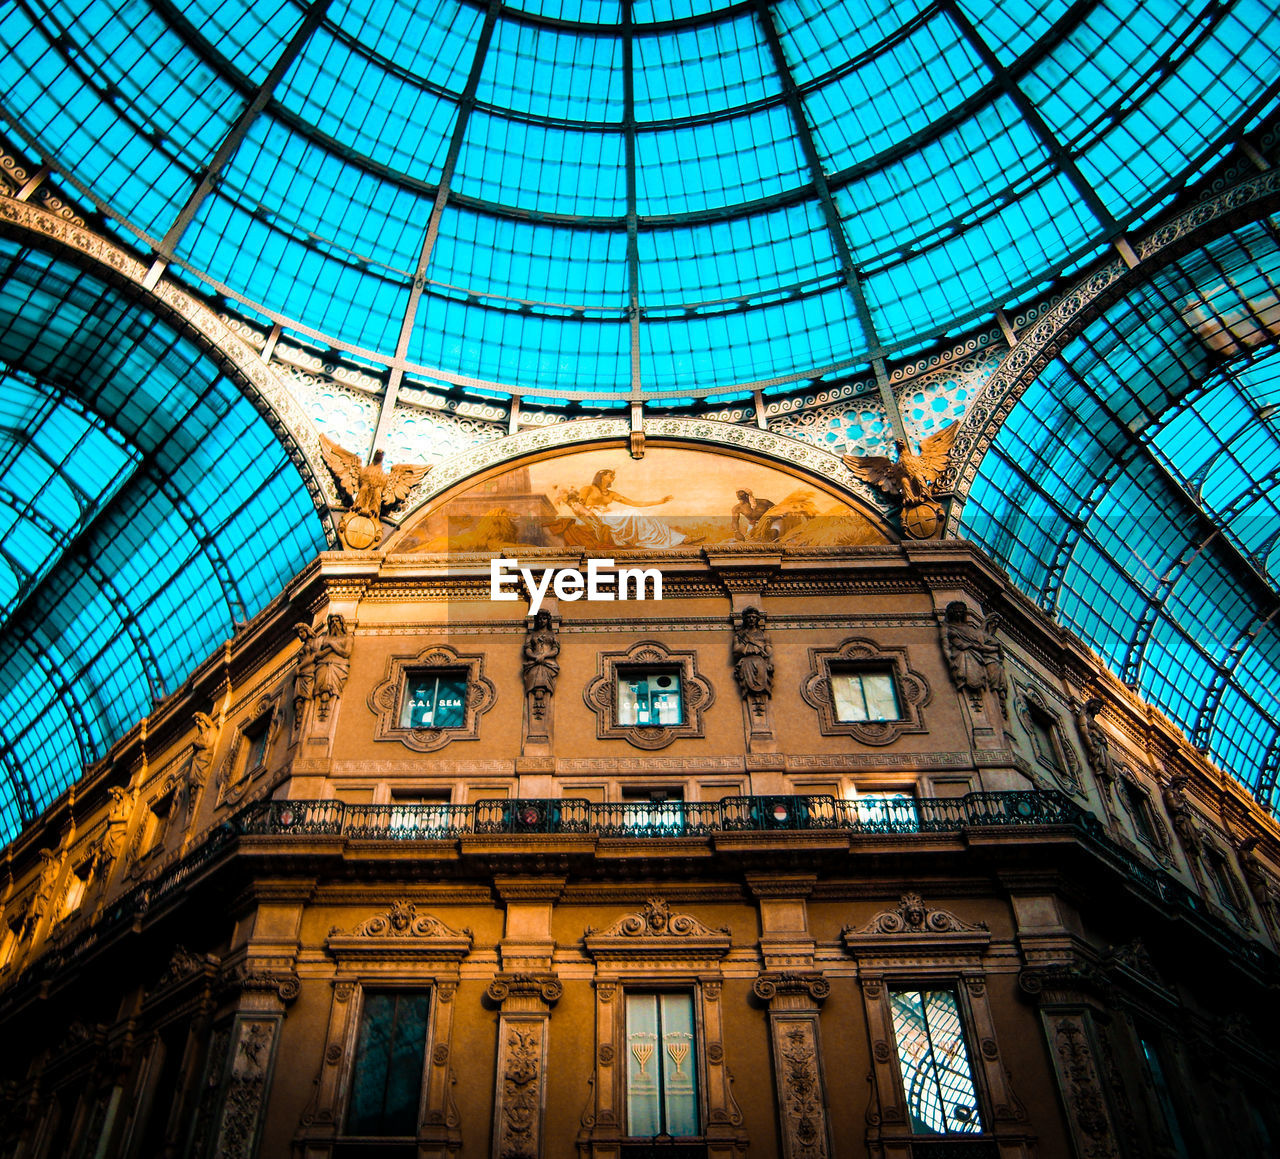 built structure, architecture, low angle view, glass - material, indoors, ceiling, travel destinations, no people, art and craft, window, dome, pattern, history, the past, travel, architectural feature, modern, shopping mall, day, glass, ornate, architecture and art